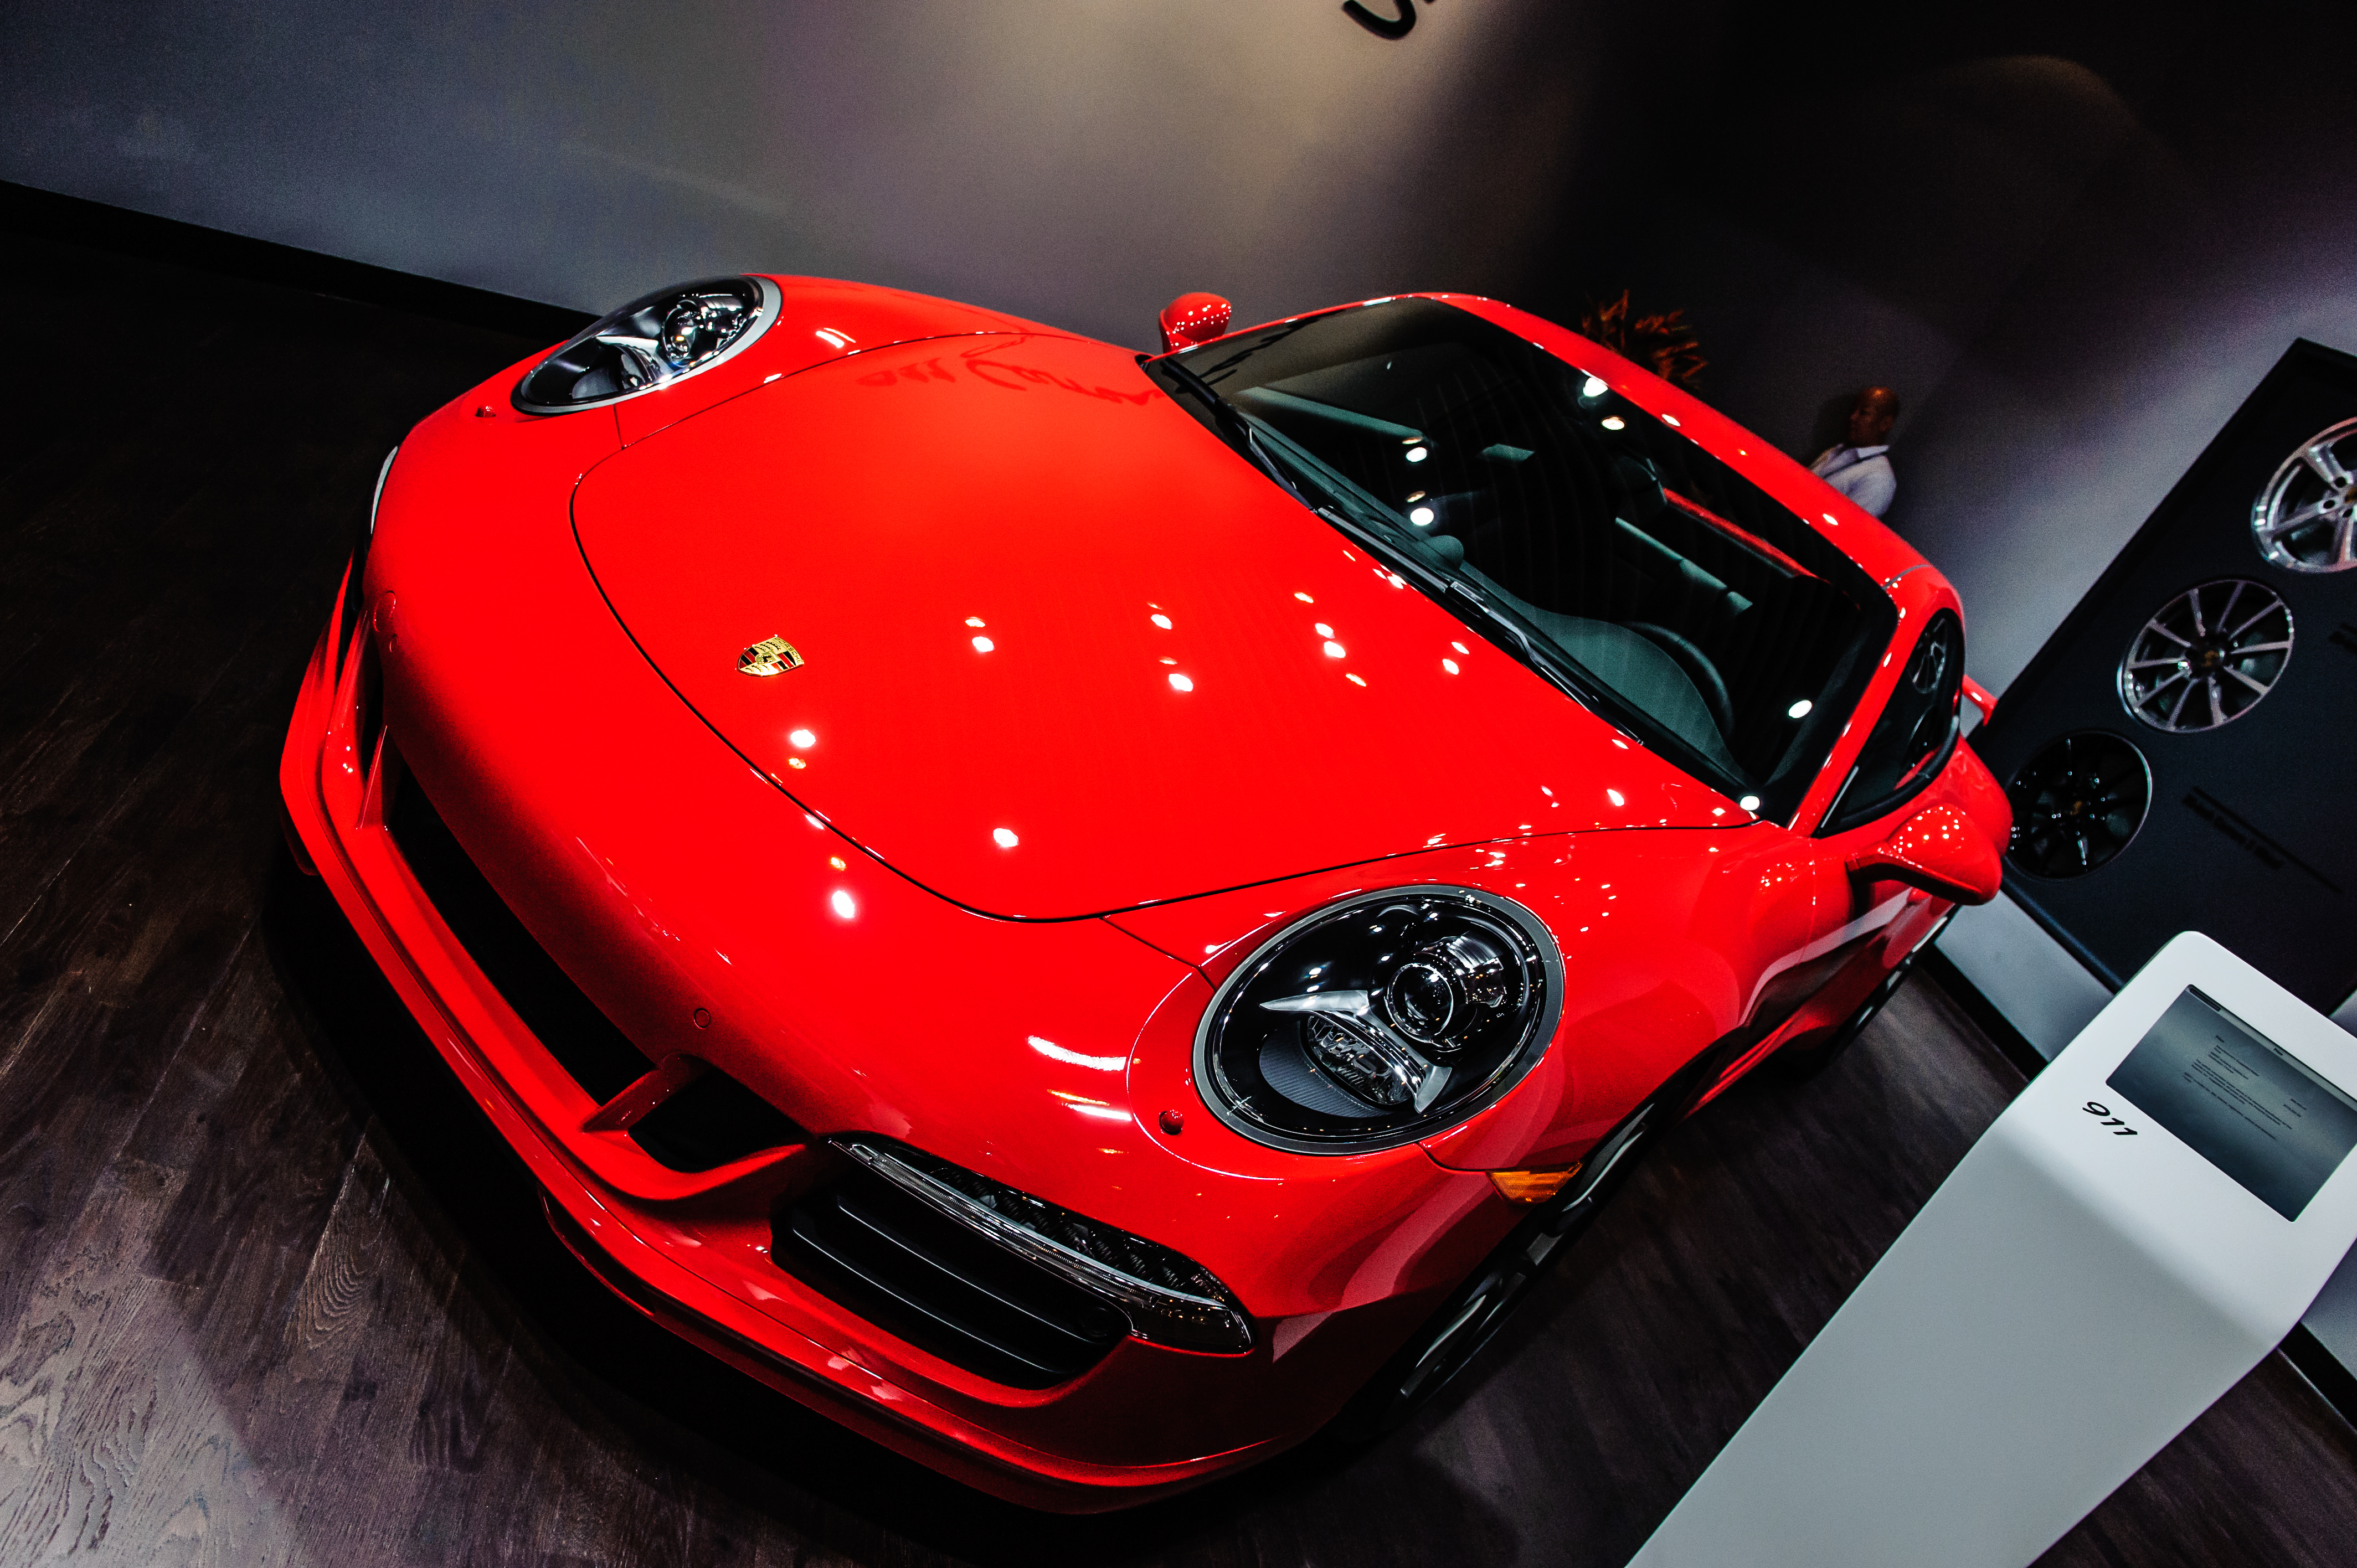 2012-porsche-911-carrera-red-2012-los-angeles-auto-show-by-lexster05_02